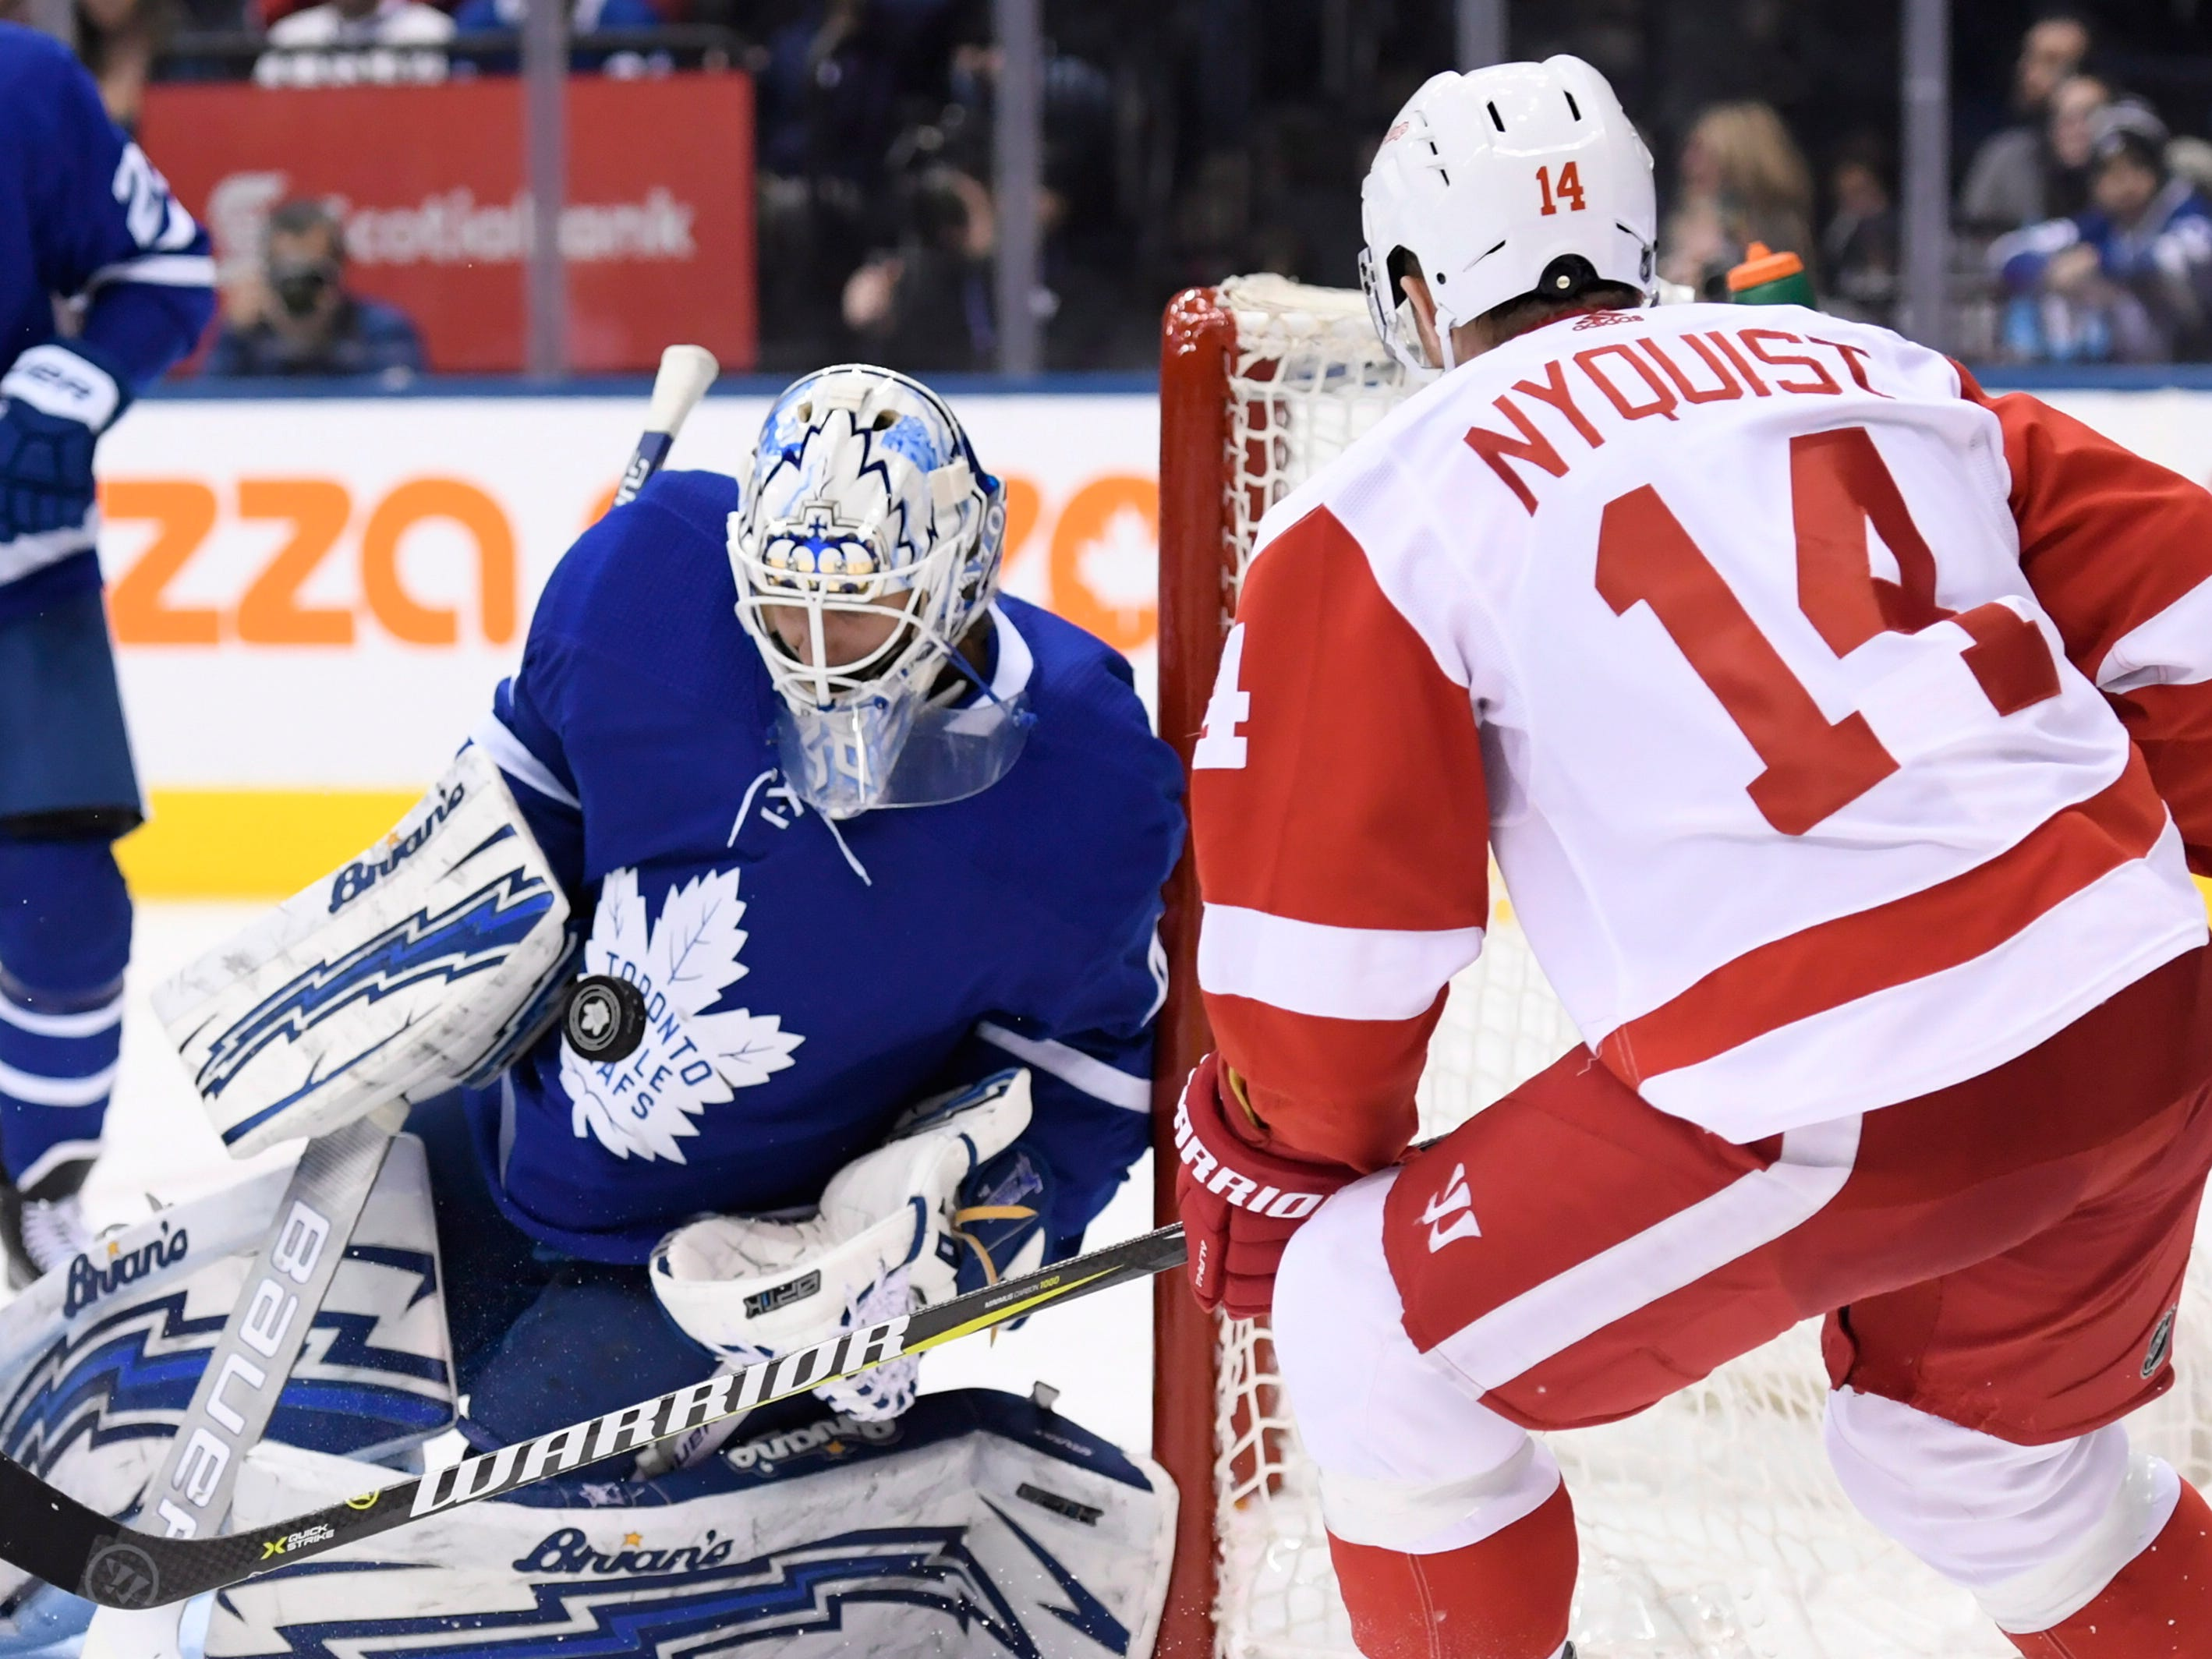 Maple Leafs goaltender Garret Sparks makes a save on Red Wings right wing Gustav Nyquist during the third period.